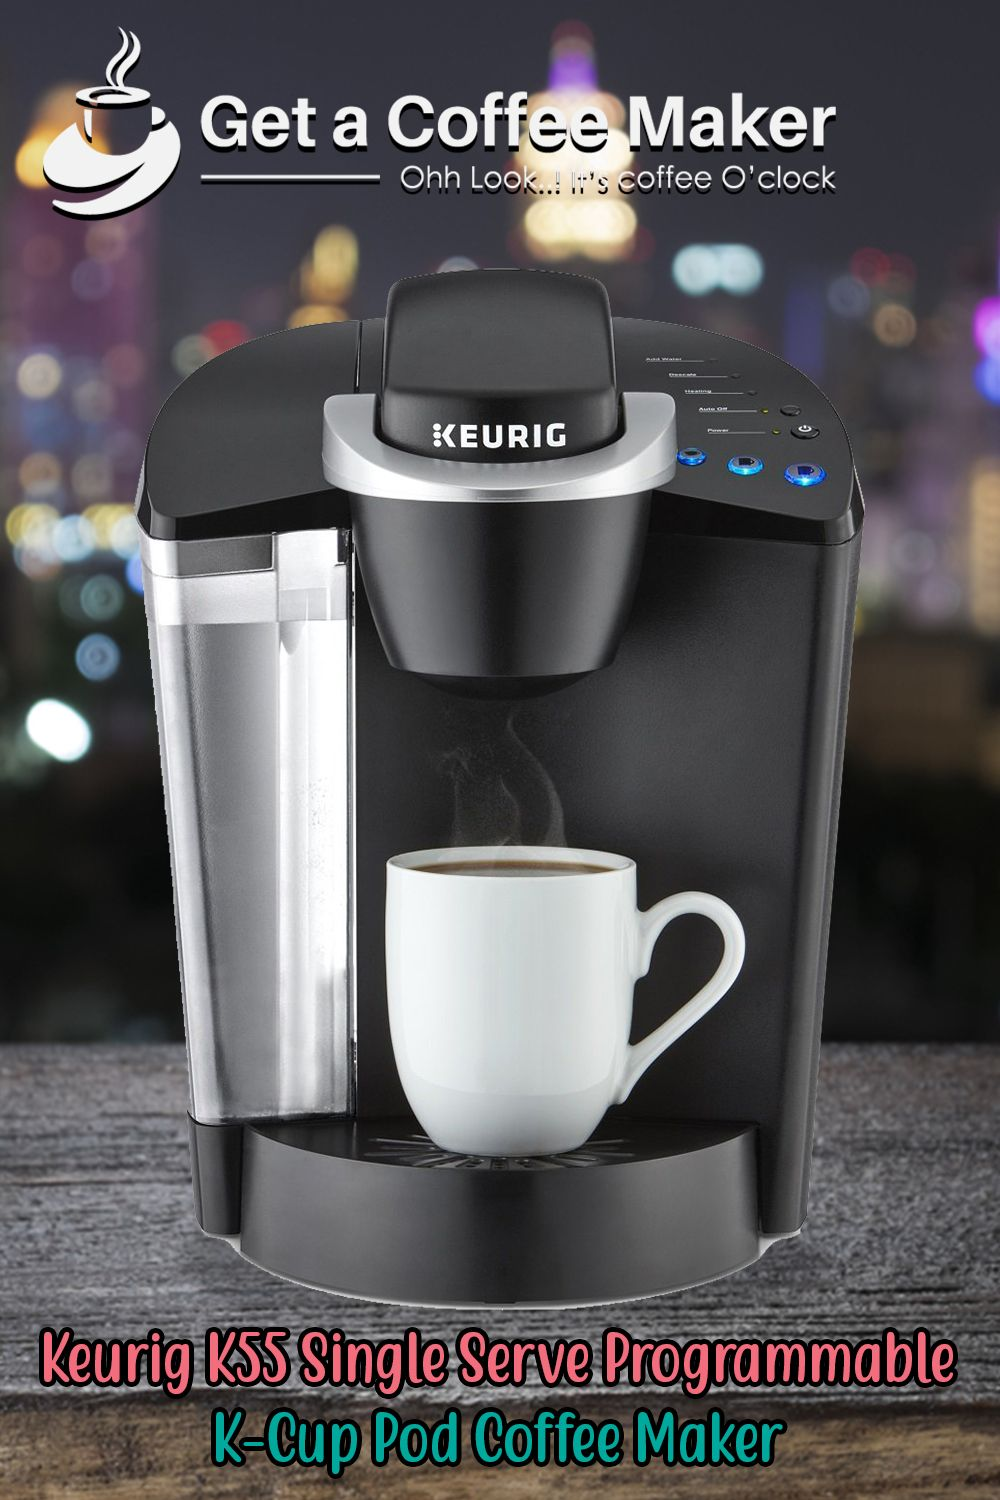 Top 10 Single Cup Coffee Makers June 2020 Reviews Buyers Guide Single Cup Coffee Maker Coffee Maker Coffee Maker Reviews